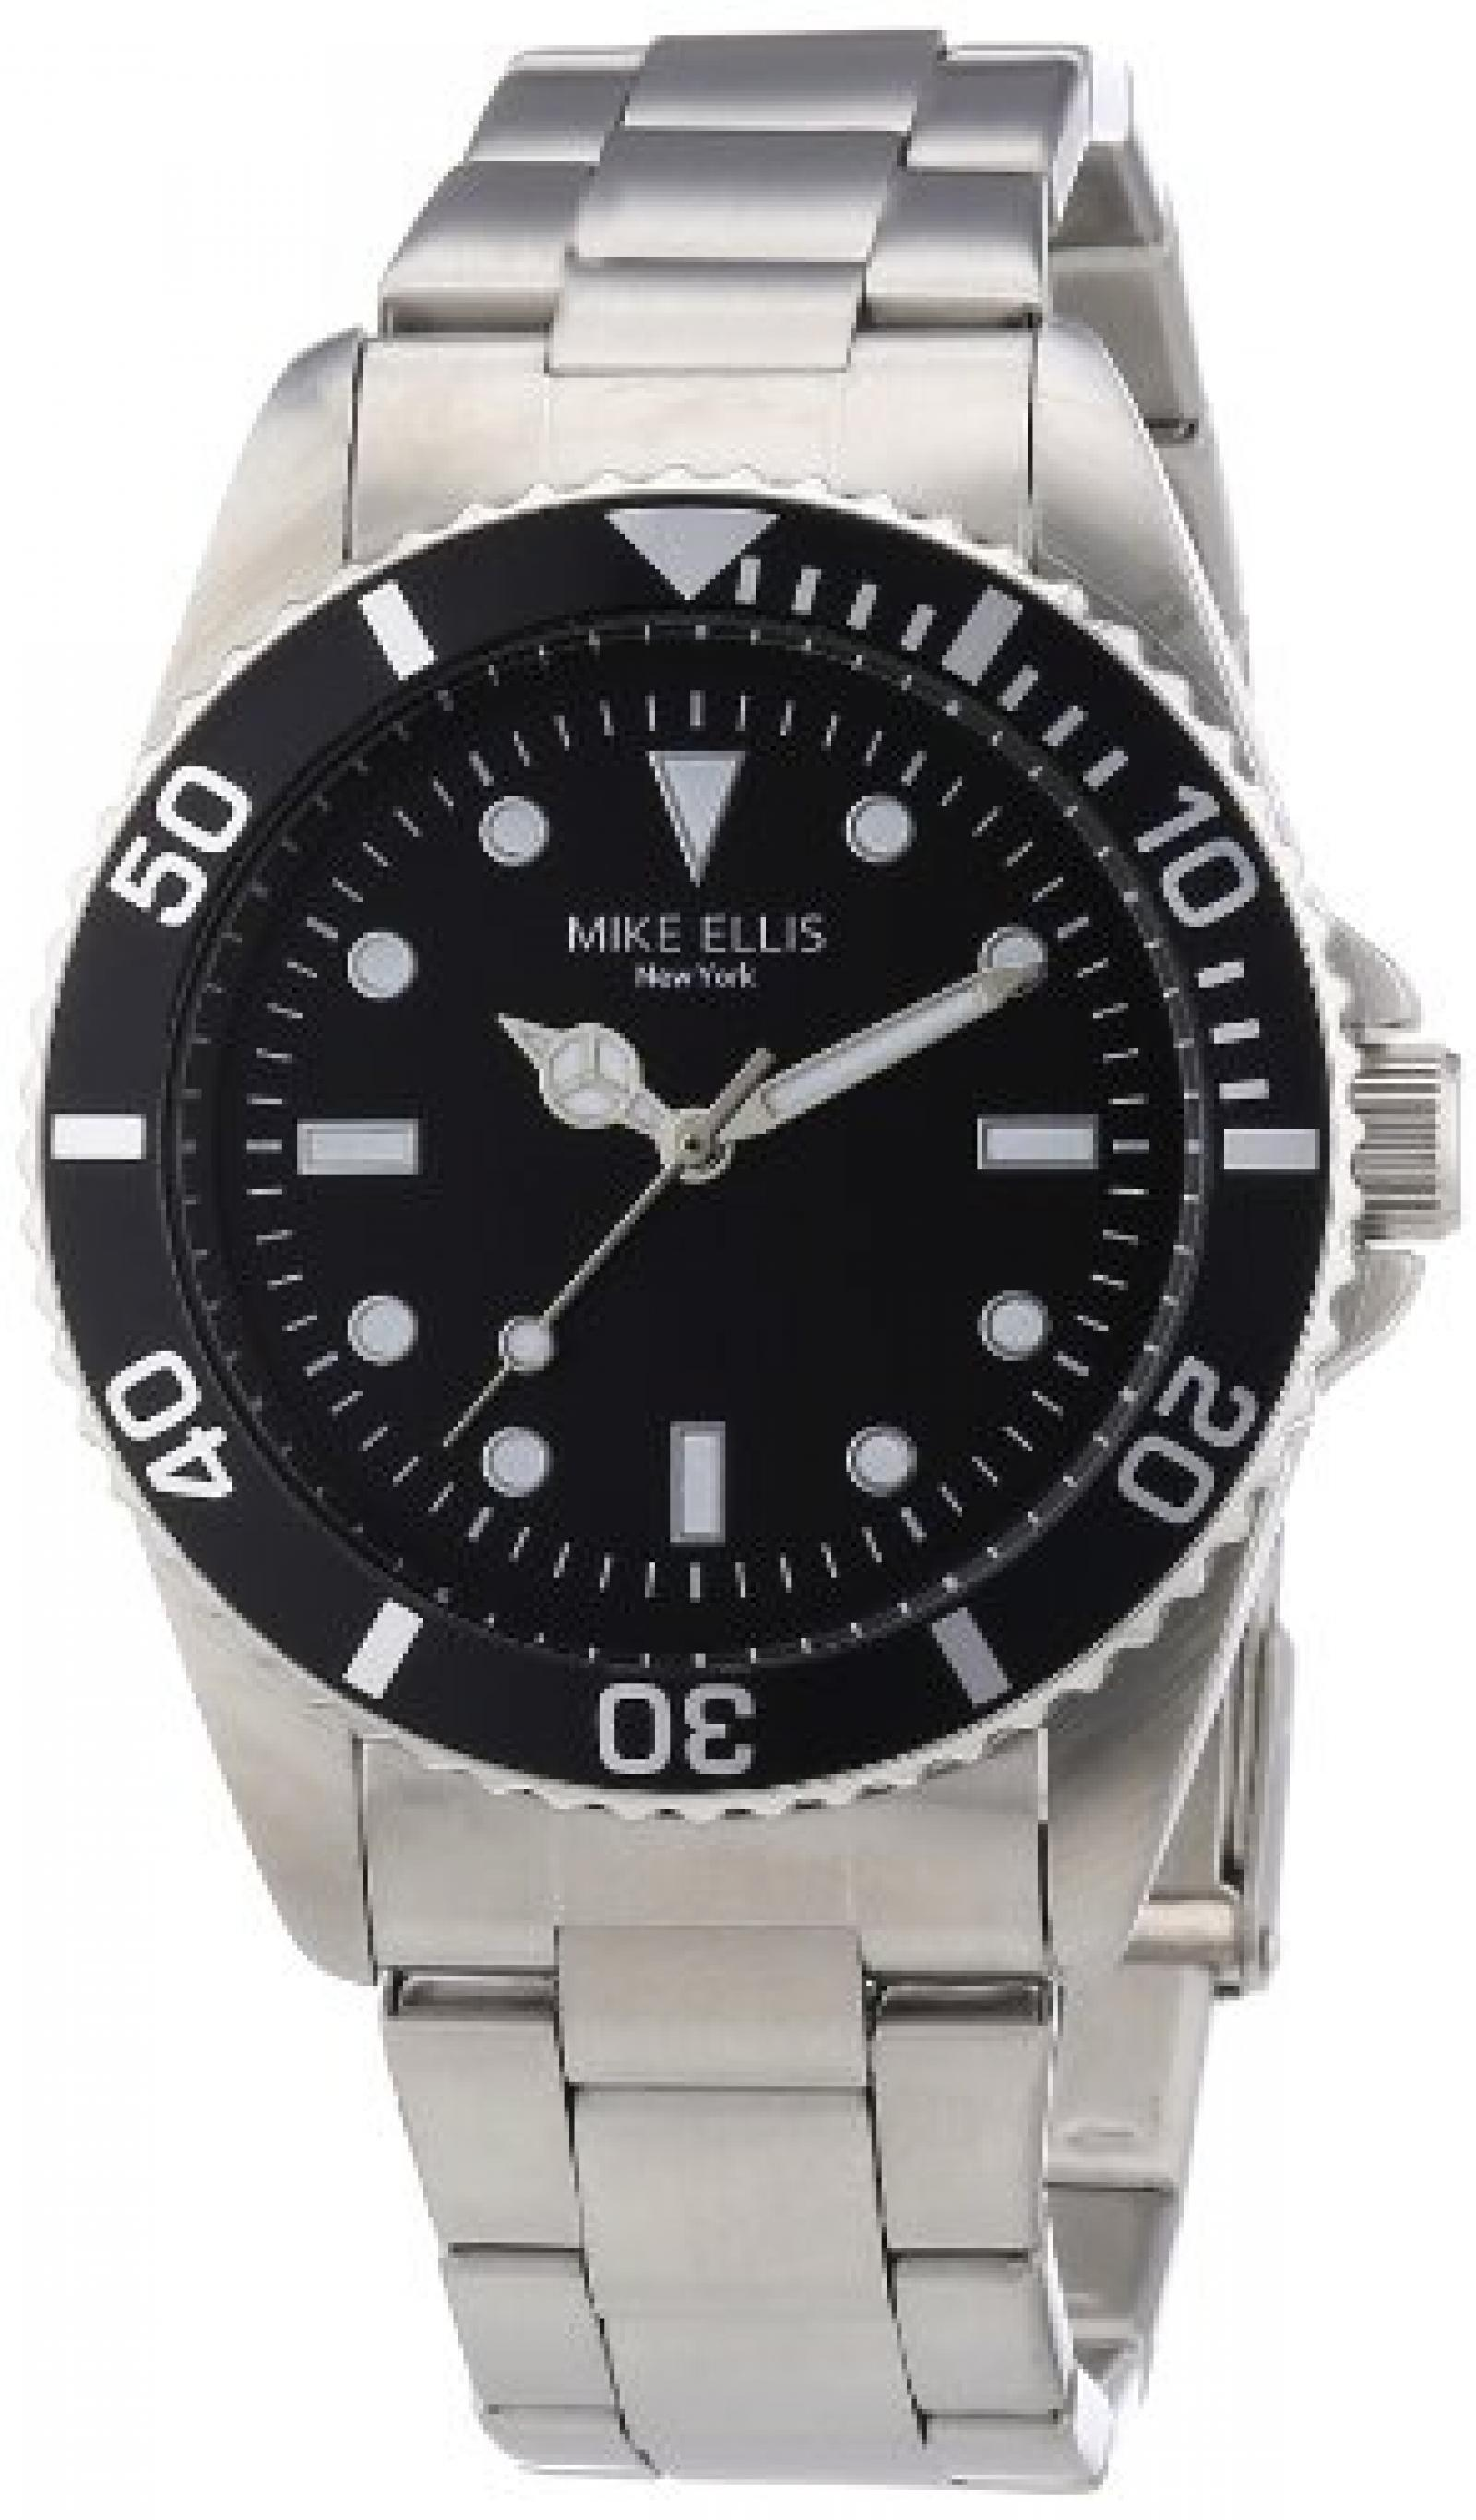 Mike Ellis New York Herren-Armbanduhr XS Analog Quarz Edelstahl M2969ASM/2